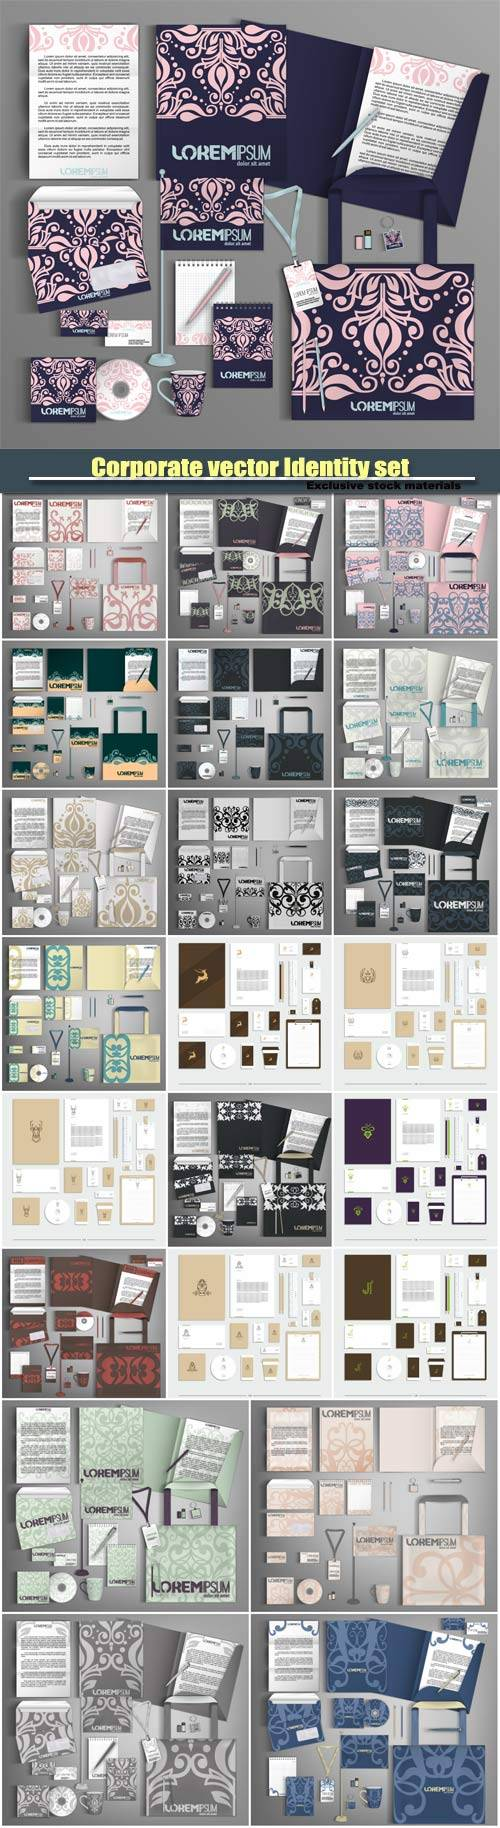 Corporate vector Identity set with abstract pattern